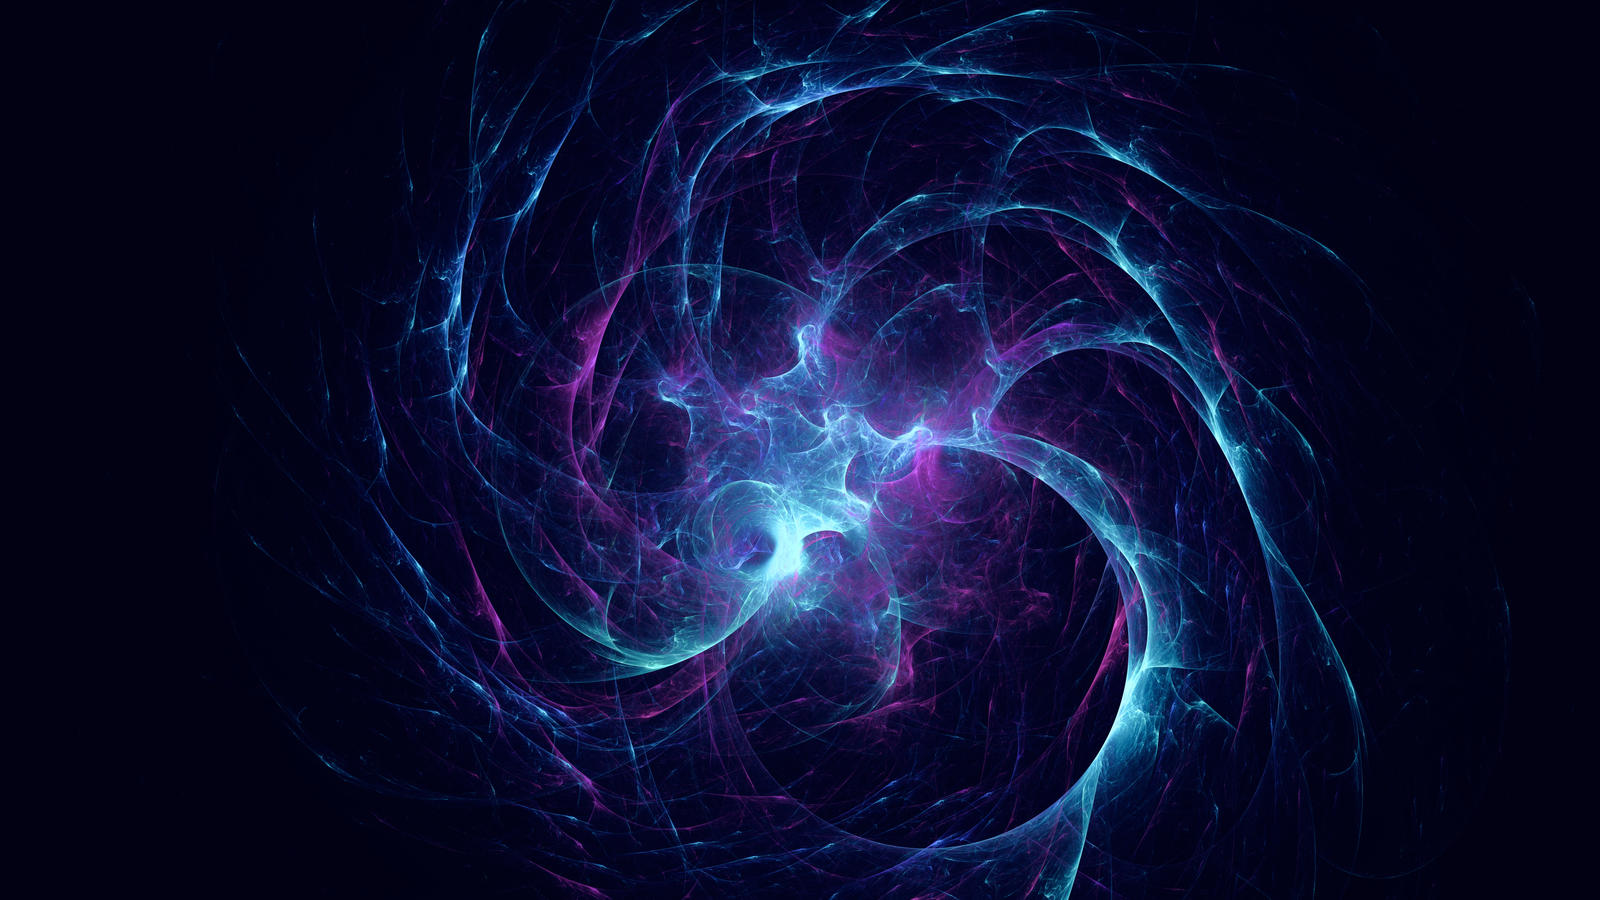 Spiral Fractal At 15360x8640 [~16K] By Ksennon On DeviantArt